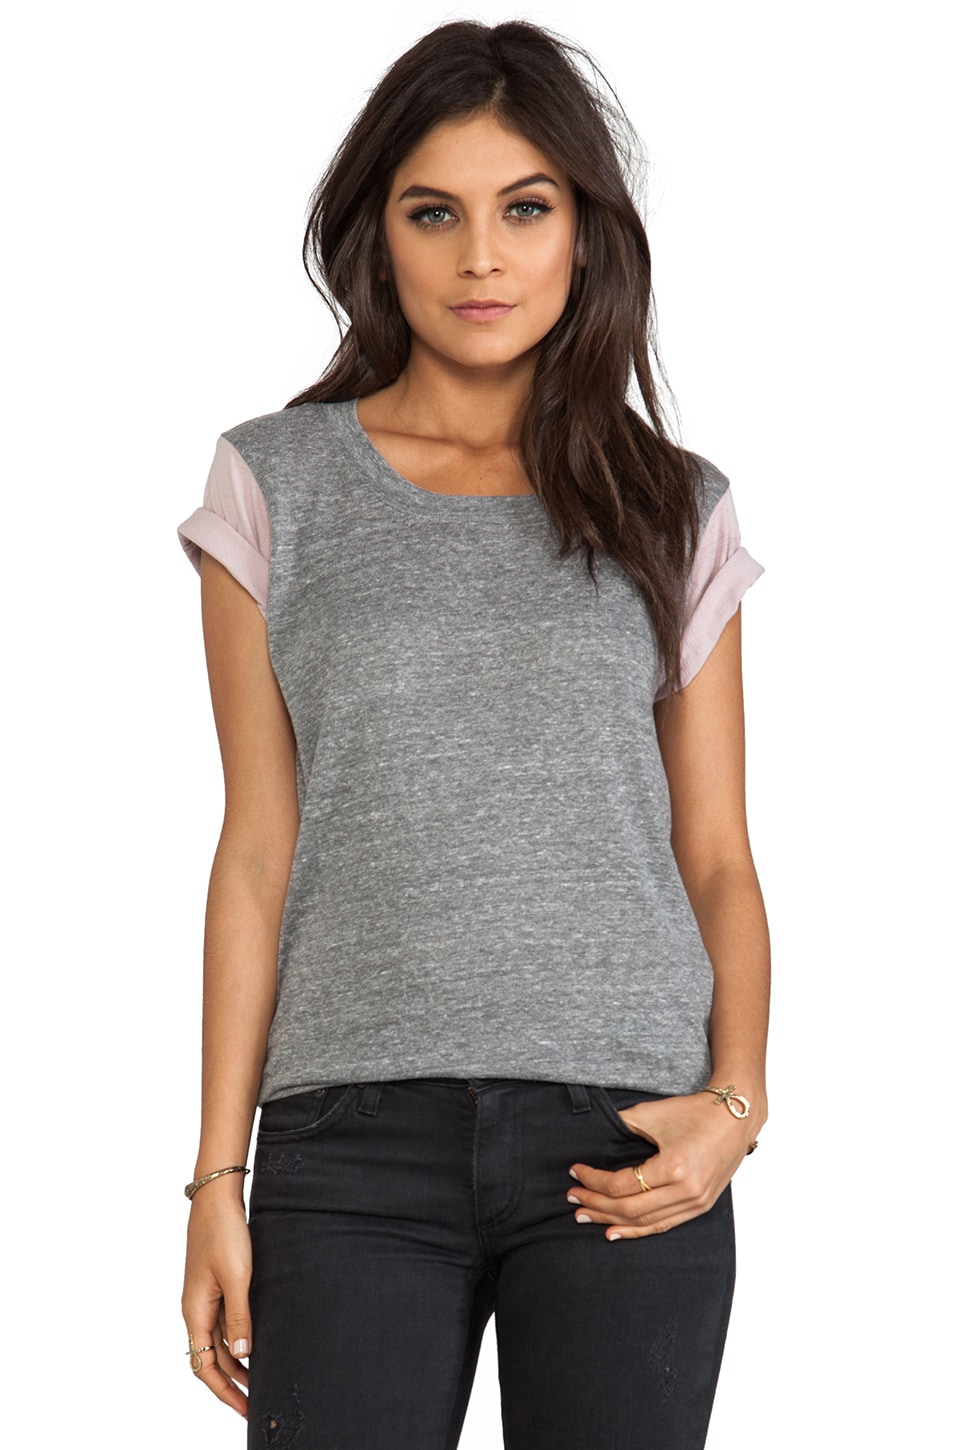 A Fine Line Andie Colorblock Sleeve Tee in Heather Grey/Mauve